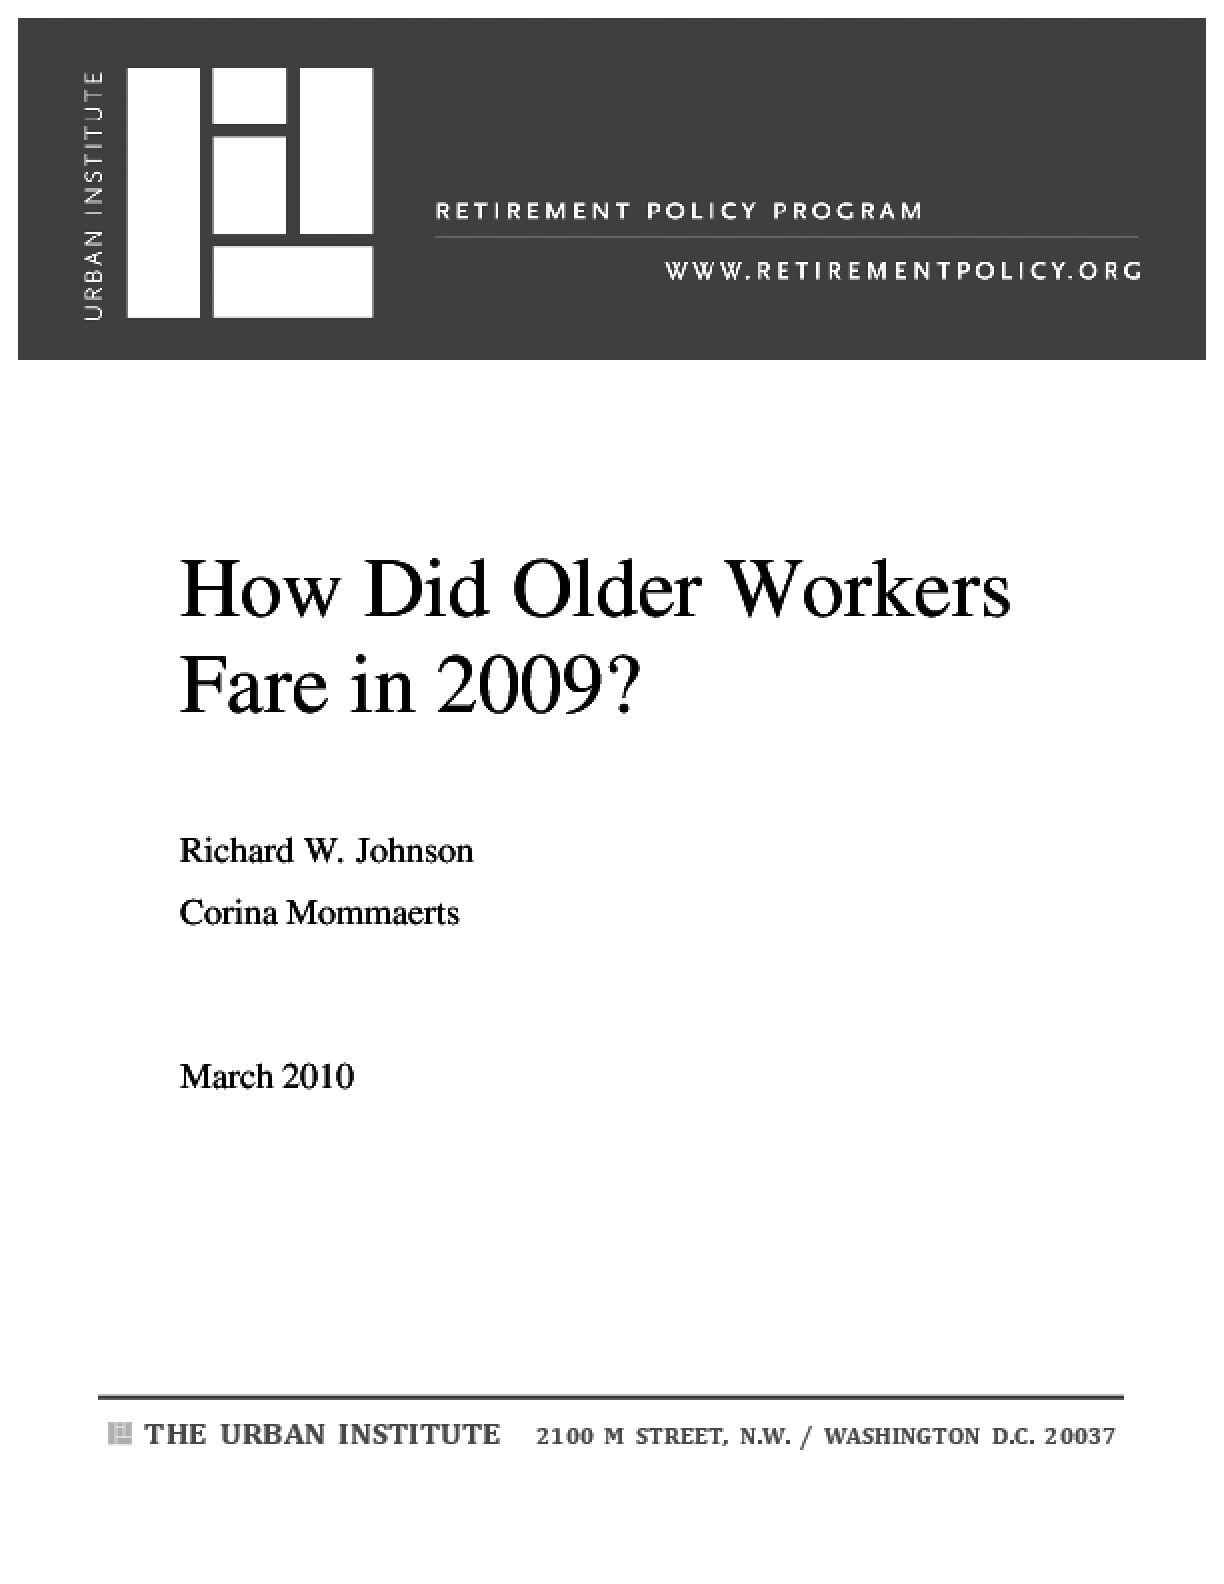 How Did Older Workers Fare in 2009?